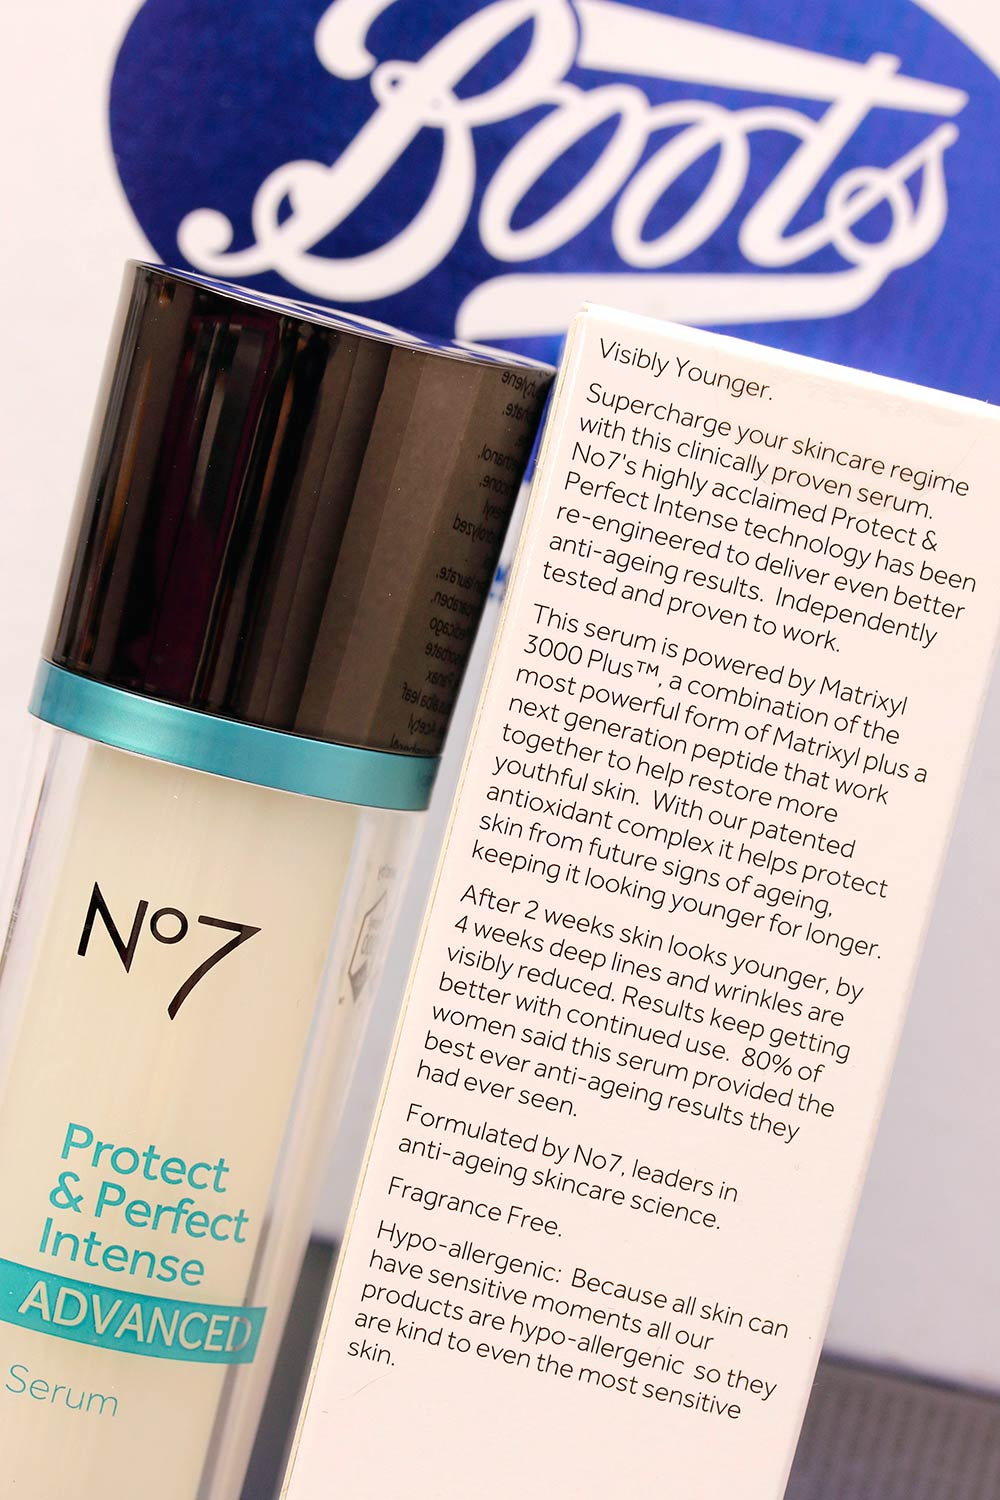 boots protect perfect intense advanced serum 2